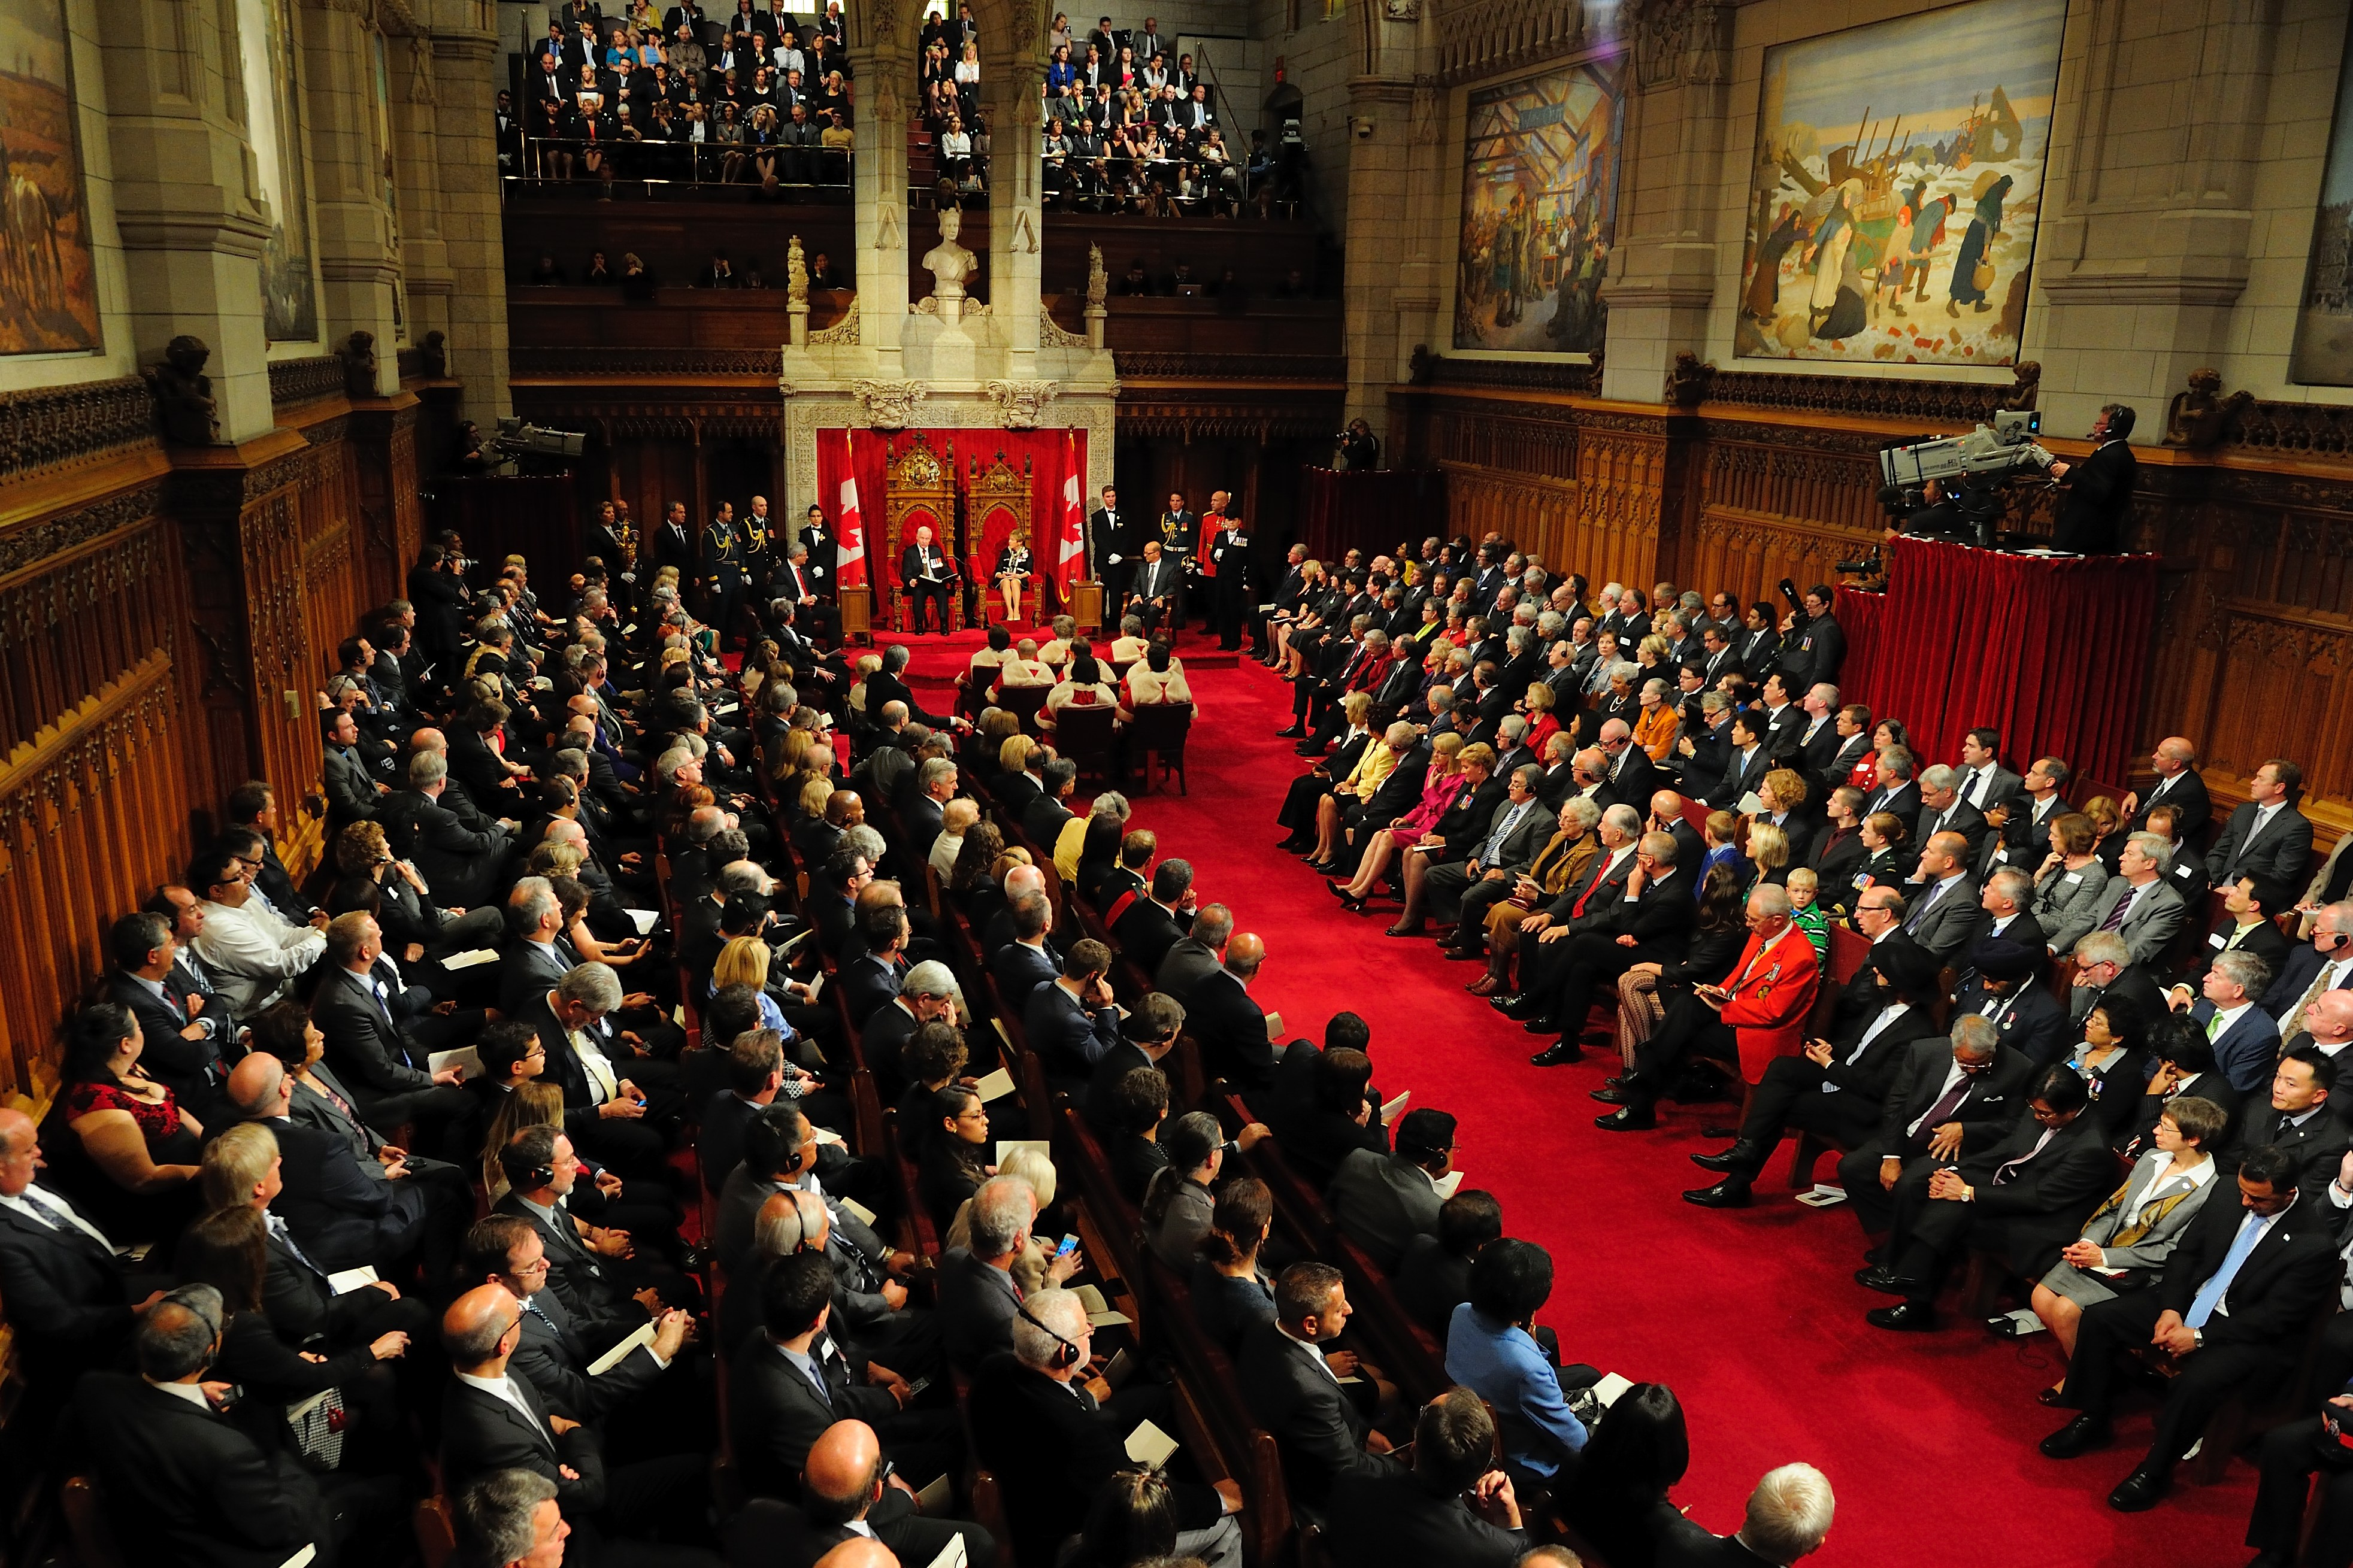 The Governor General, as the Queen's representative in Canada, reads the Speech from the Throne to officially open a new session of Parliament. The Speech sets out the broad goals and directions of the government and the initiatives it will undertake to accomplish those goals.